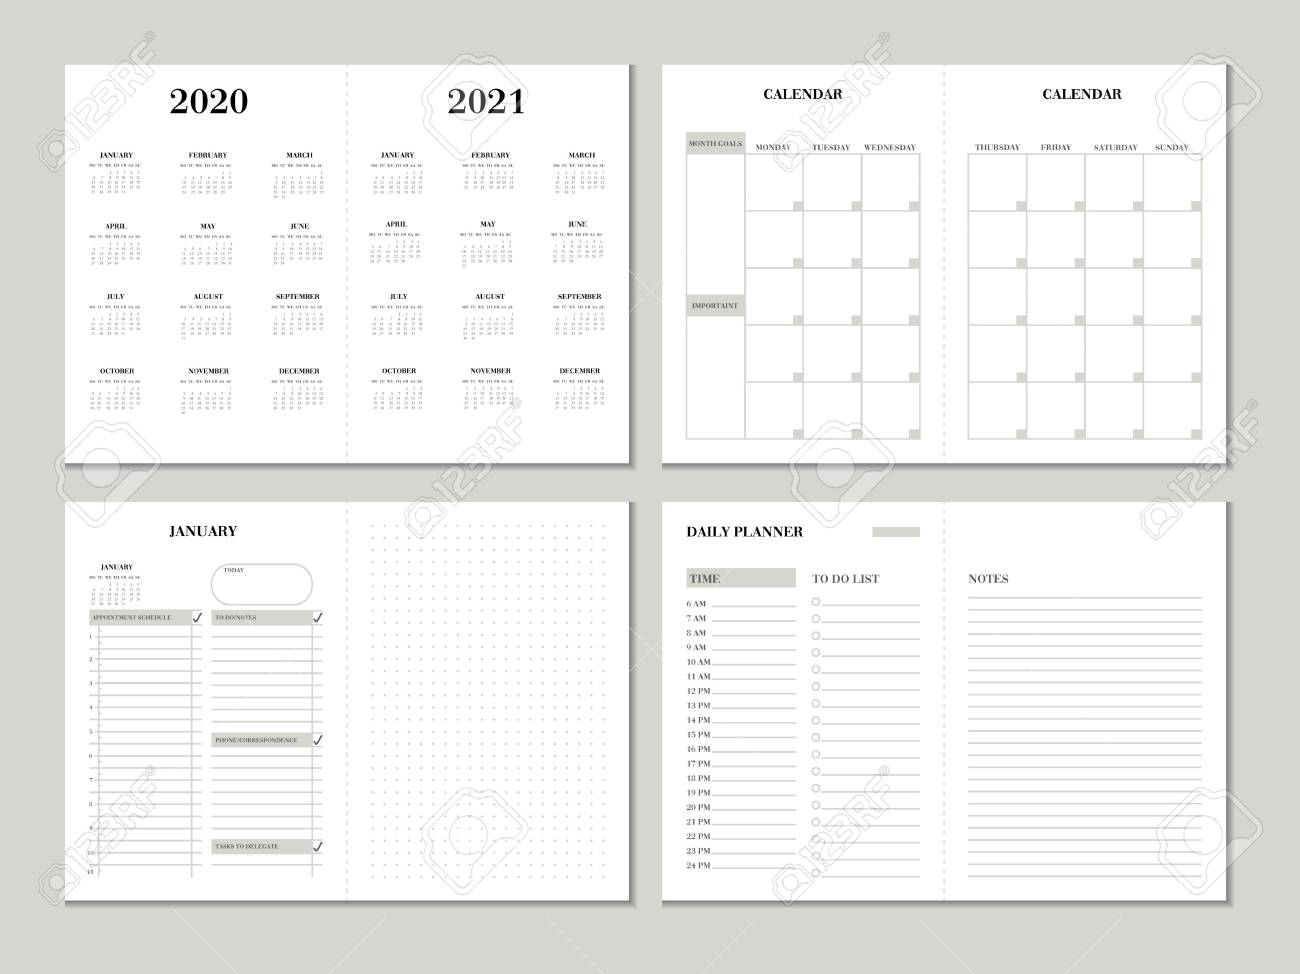 Planner Design Template For 2020 2021 Year. Weekly And Monthly.. with 2021 Planner: Weekly Calendar Planner